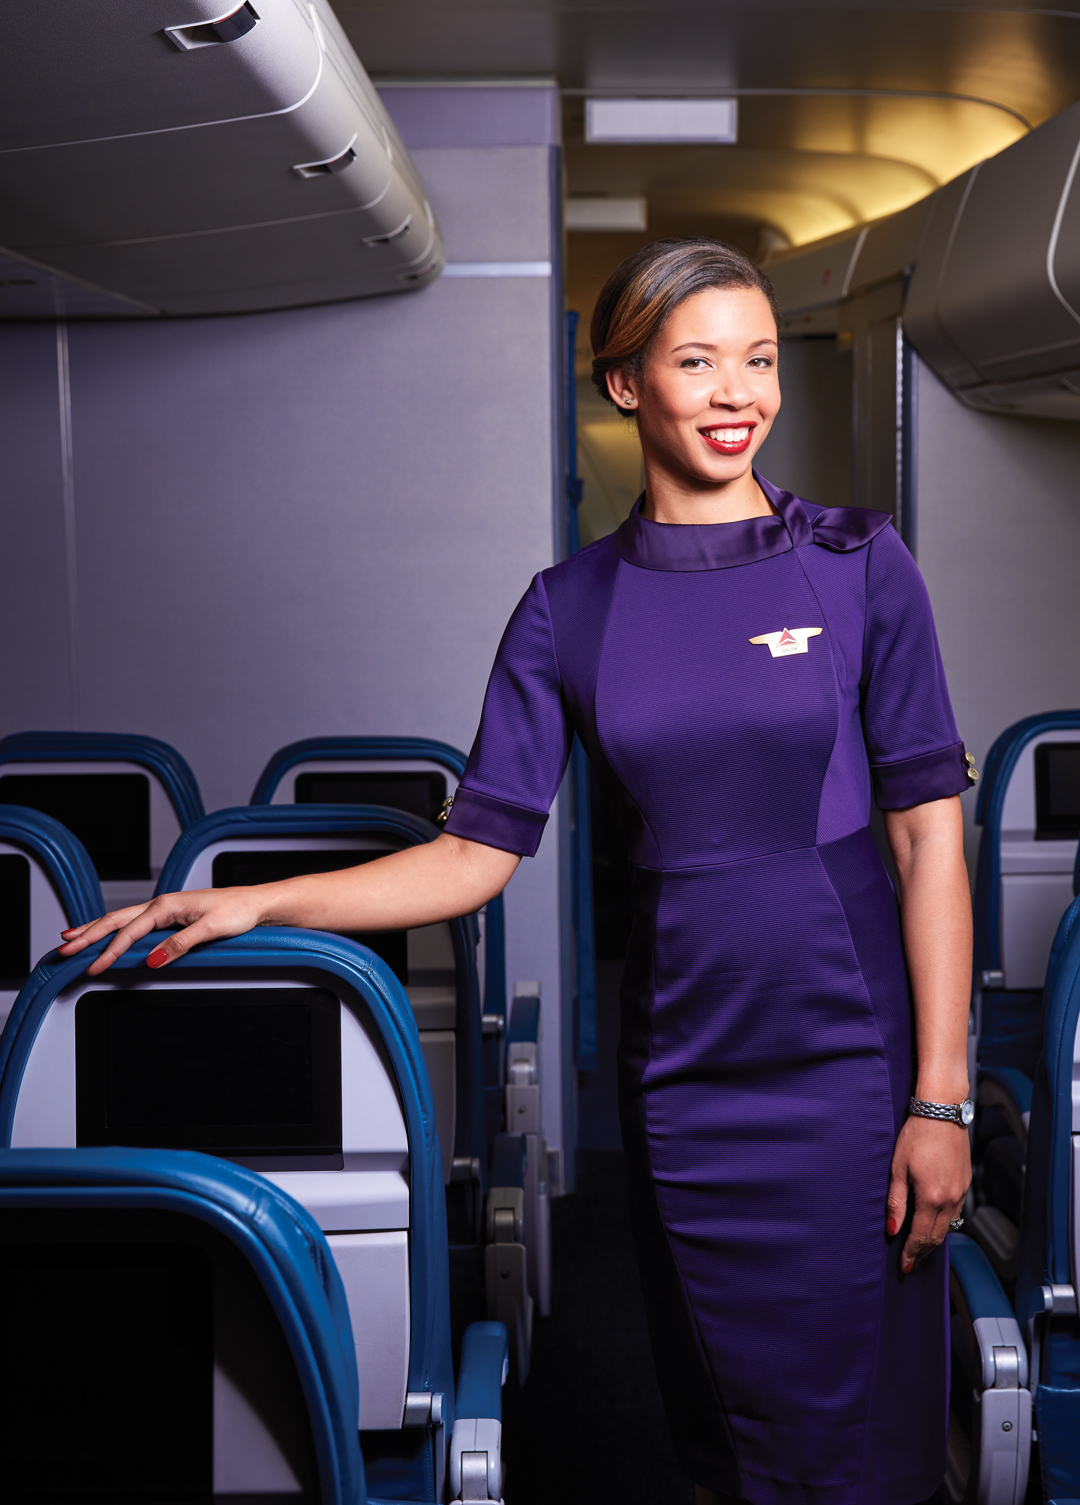 Flight Fashion As Delta S New Purple Uniforms Take Off A Look